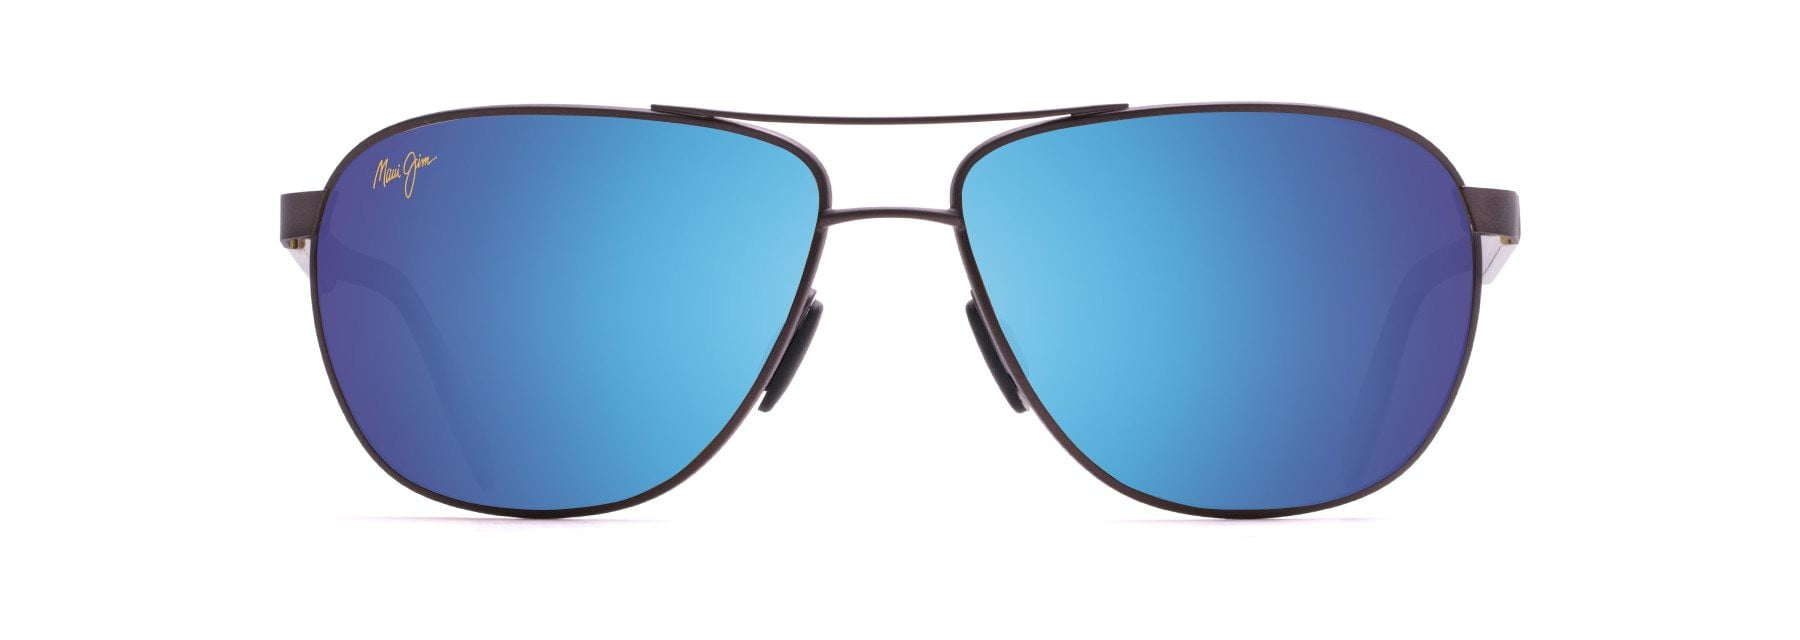 MyMaui Castles MM728-021 Sunglasses